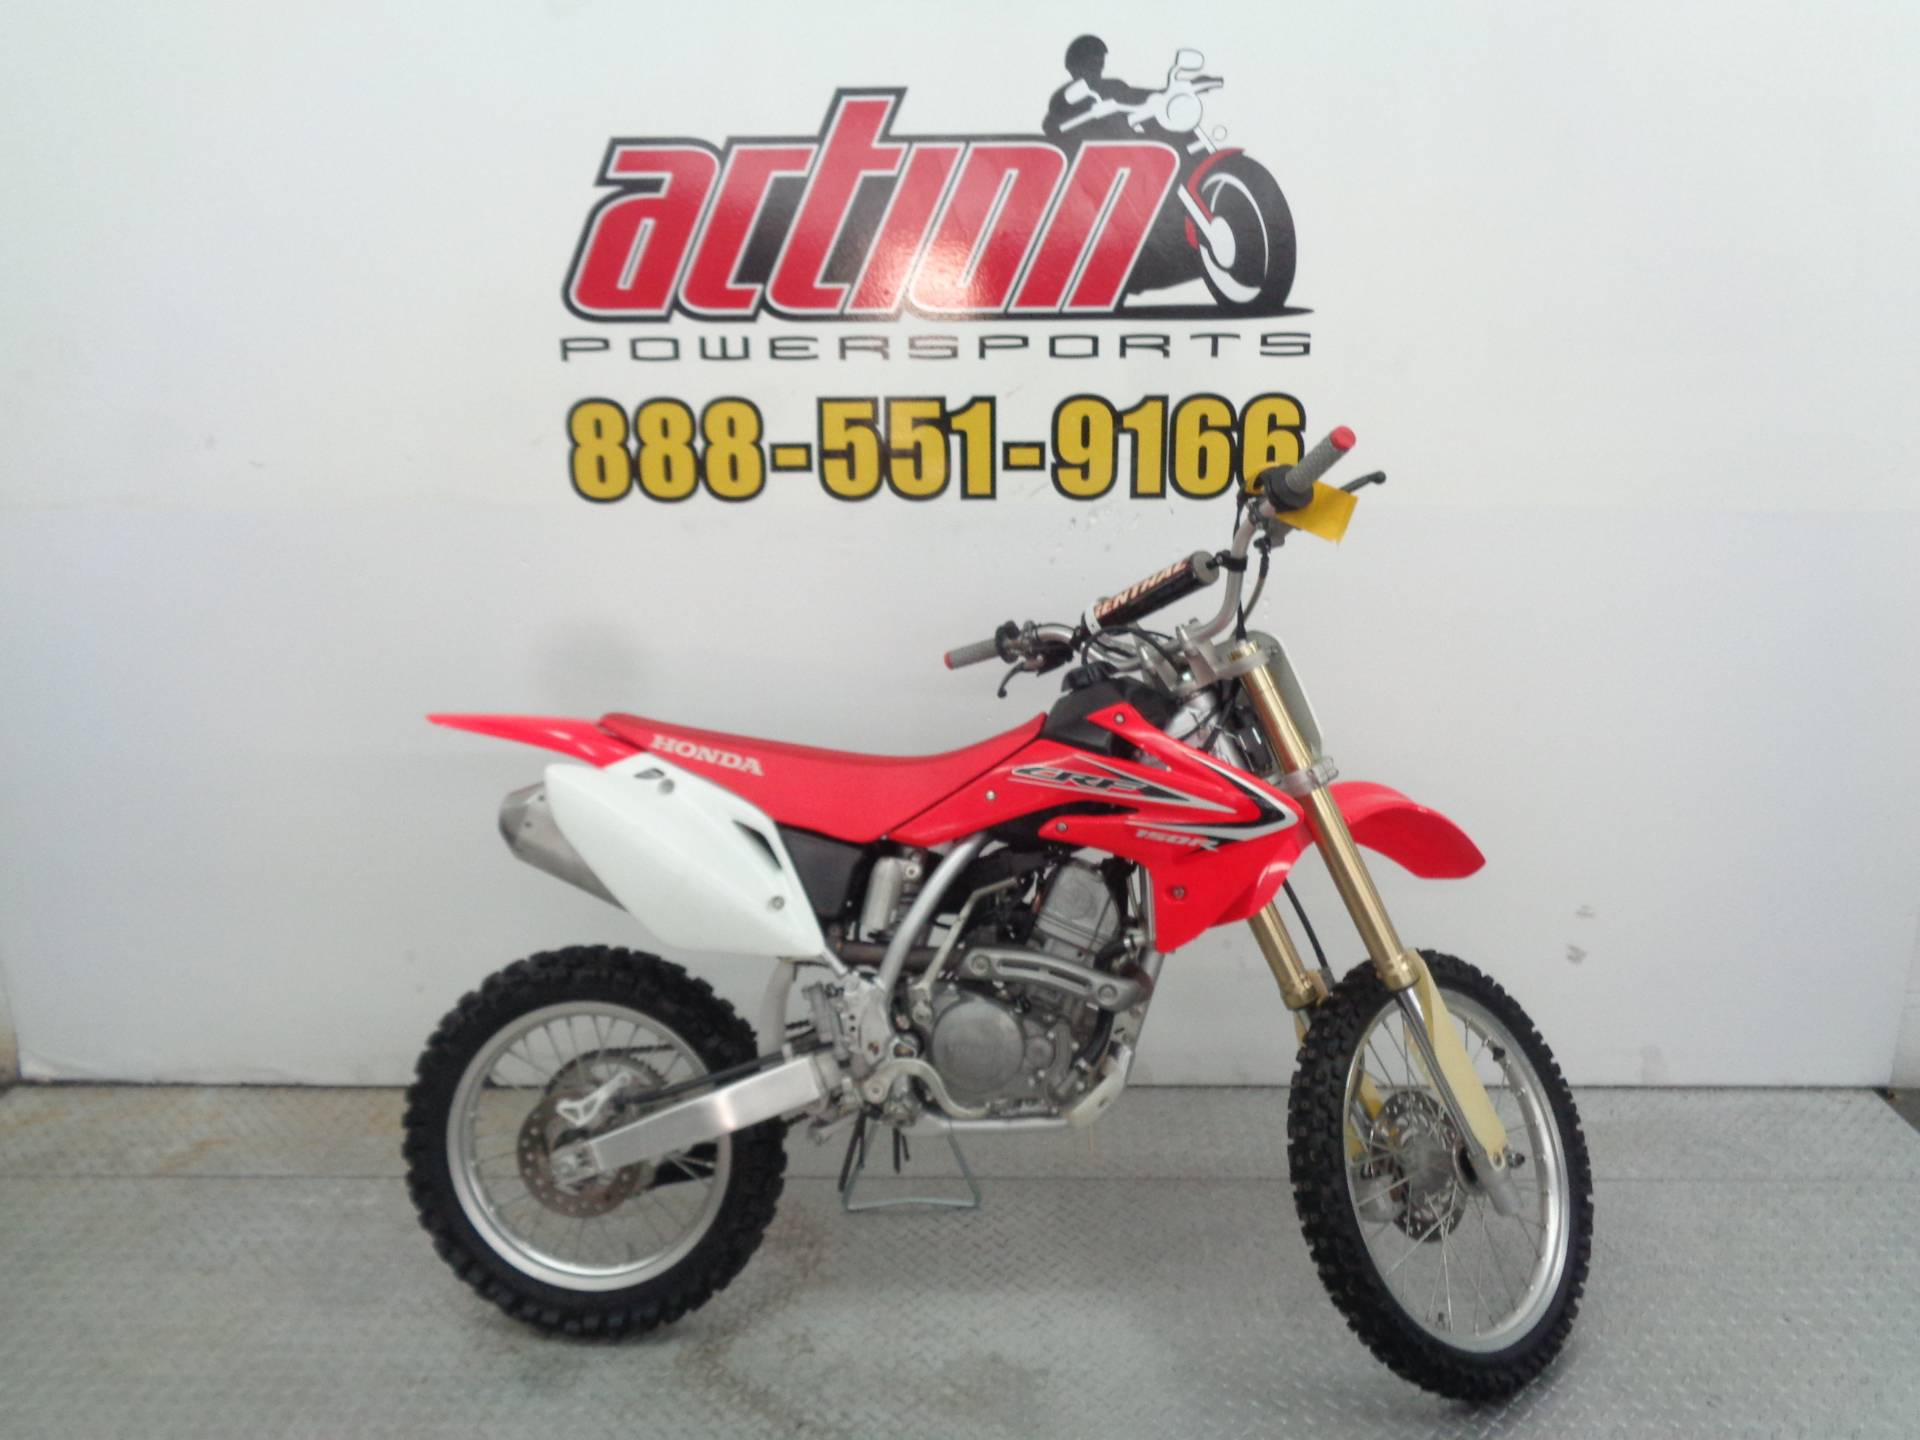 2013 Honda CRF150R for sale 6799